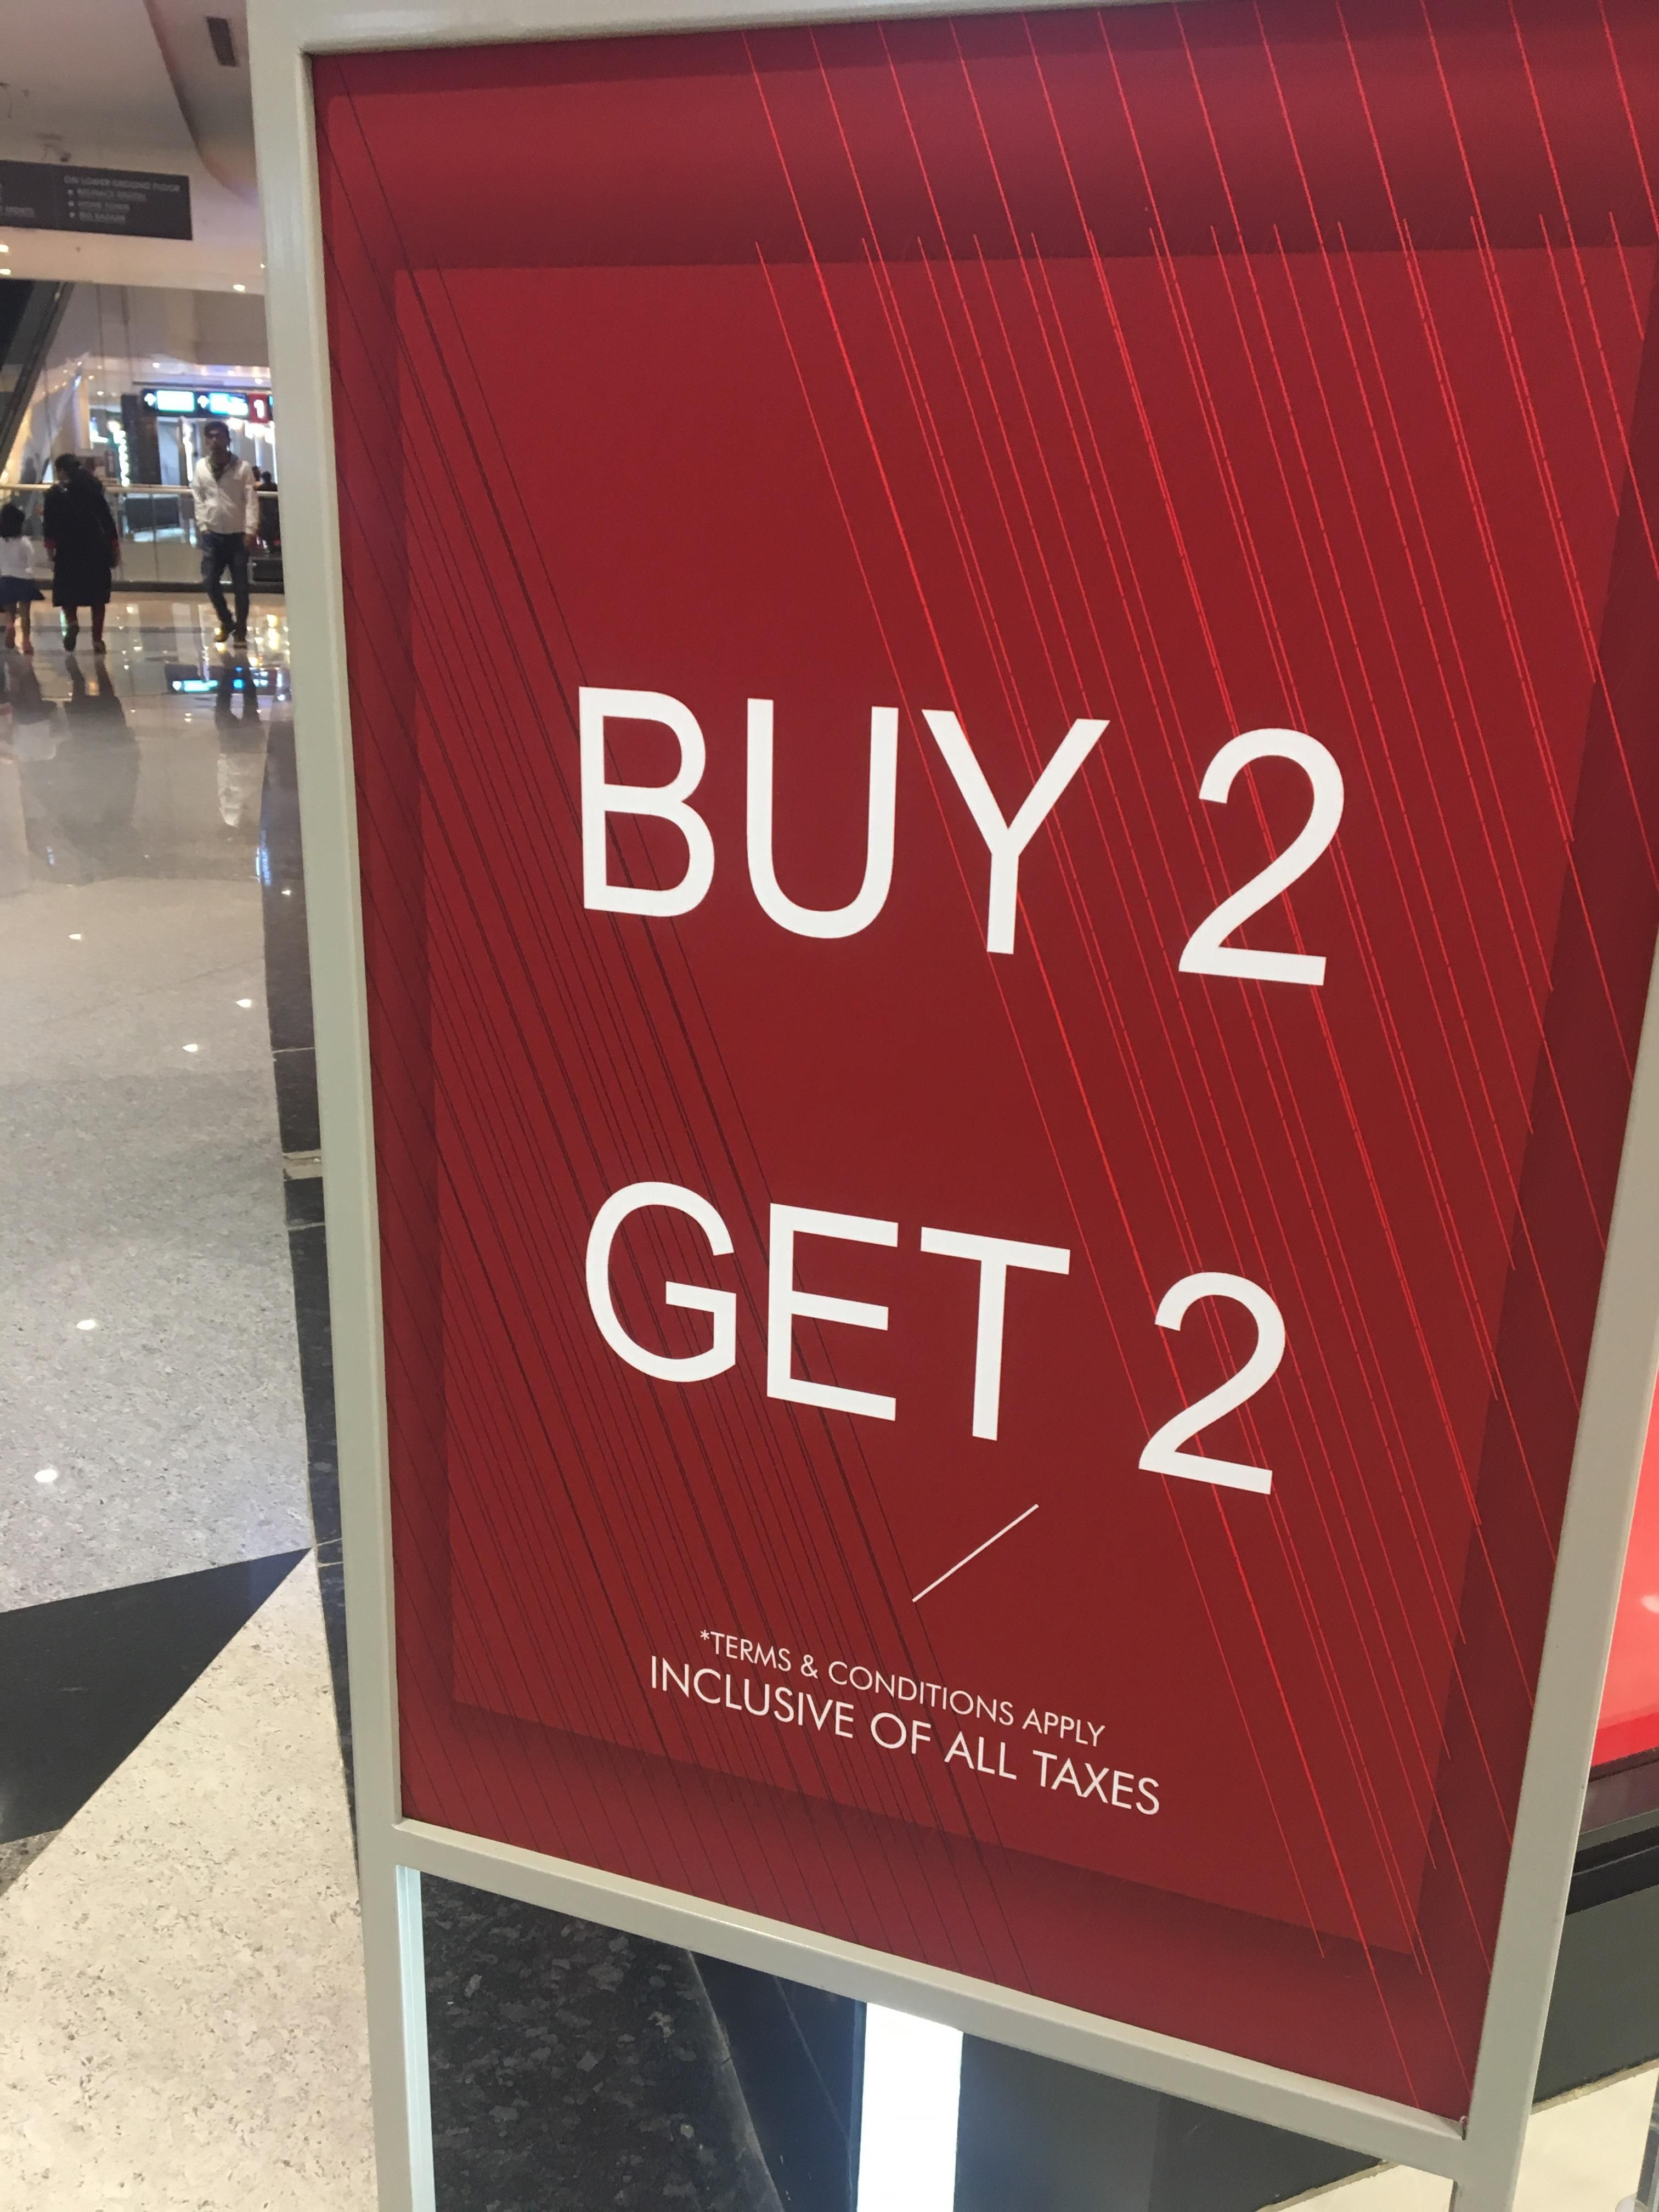 I thought buy 2 get 2 is normal!